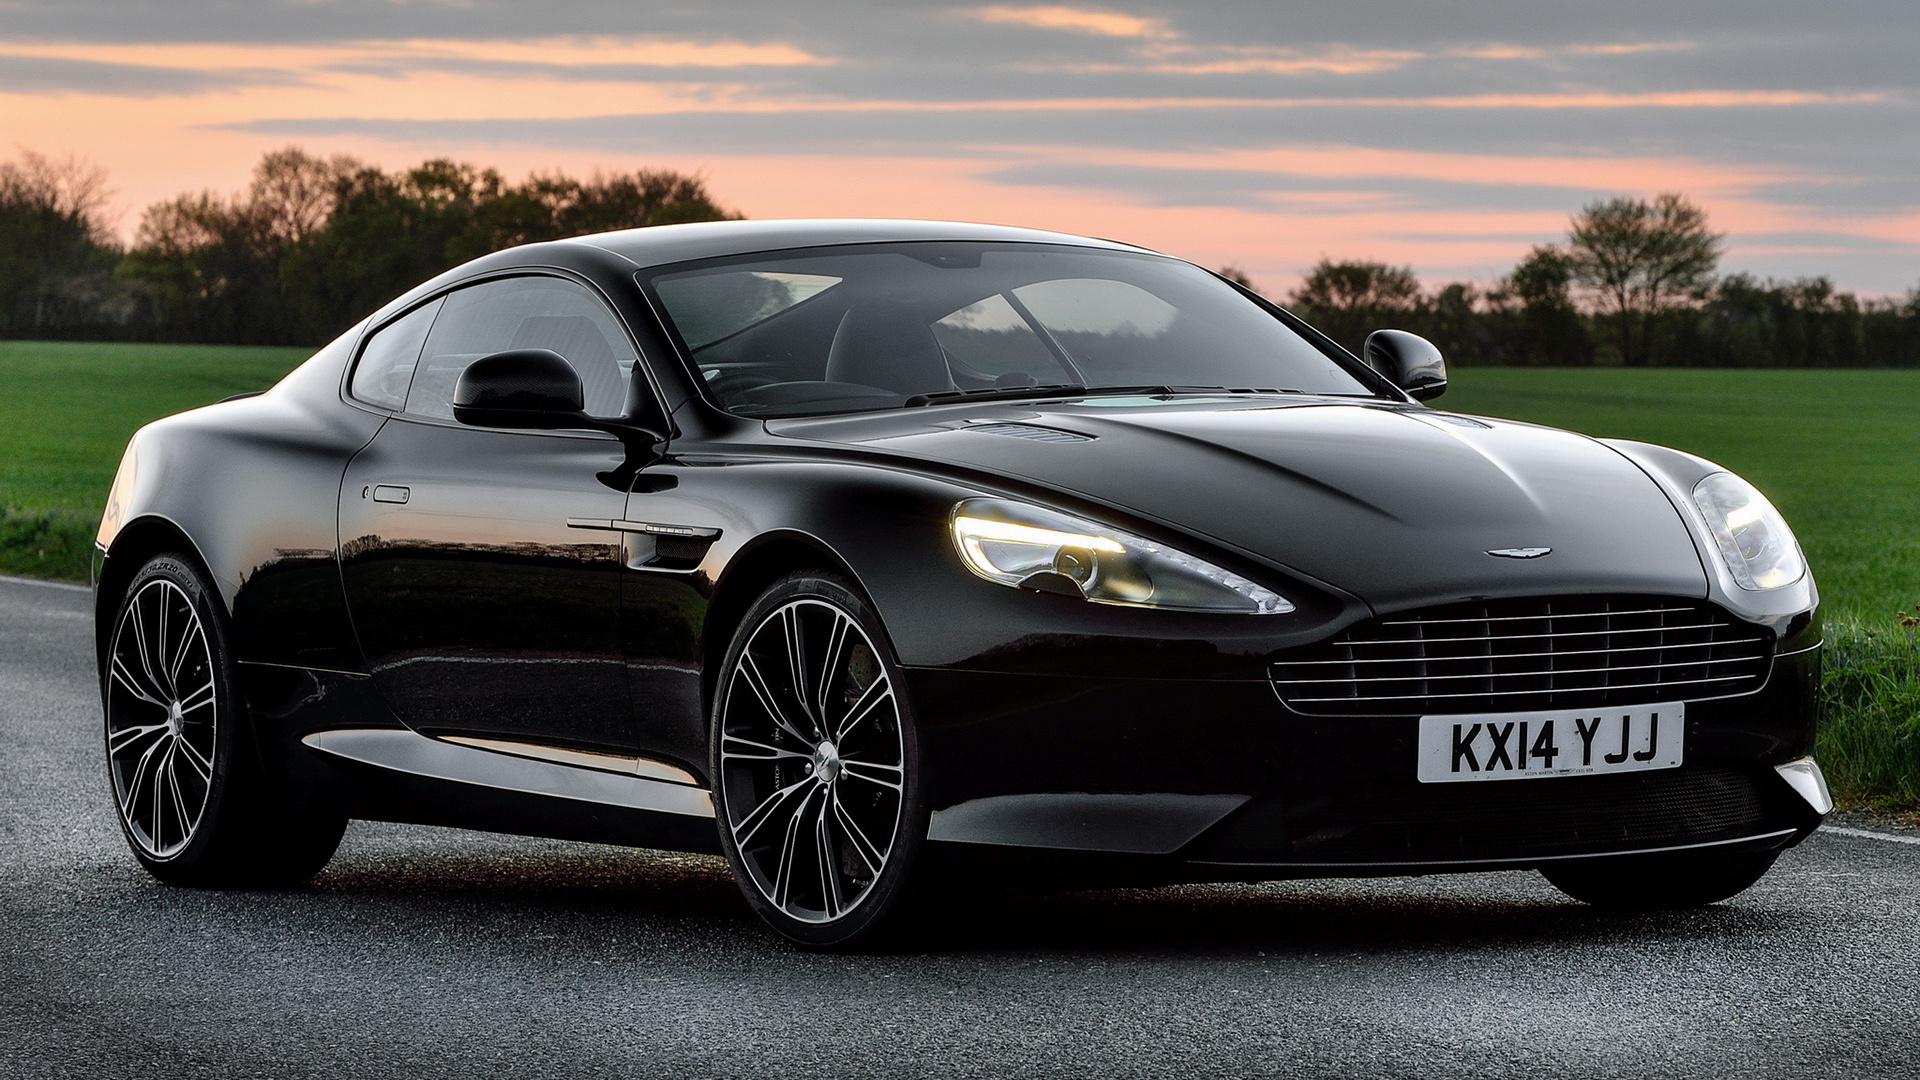 2014 Aston Martin DB9 Carbon Black (UK)